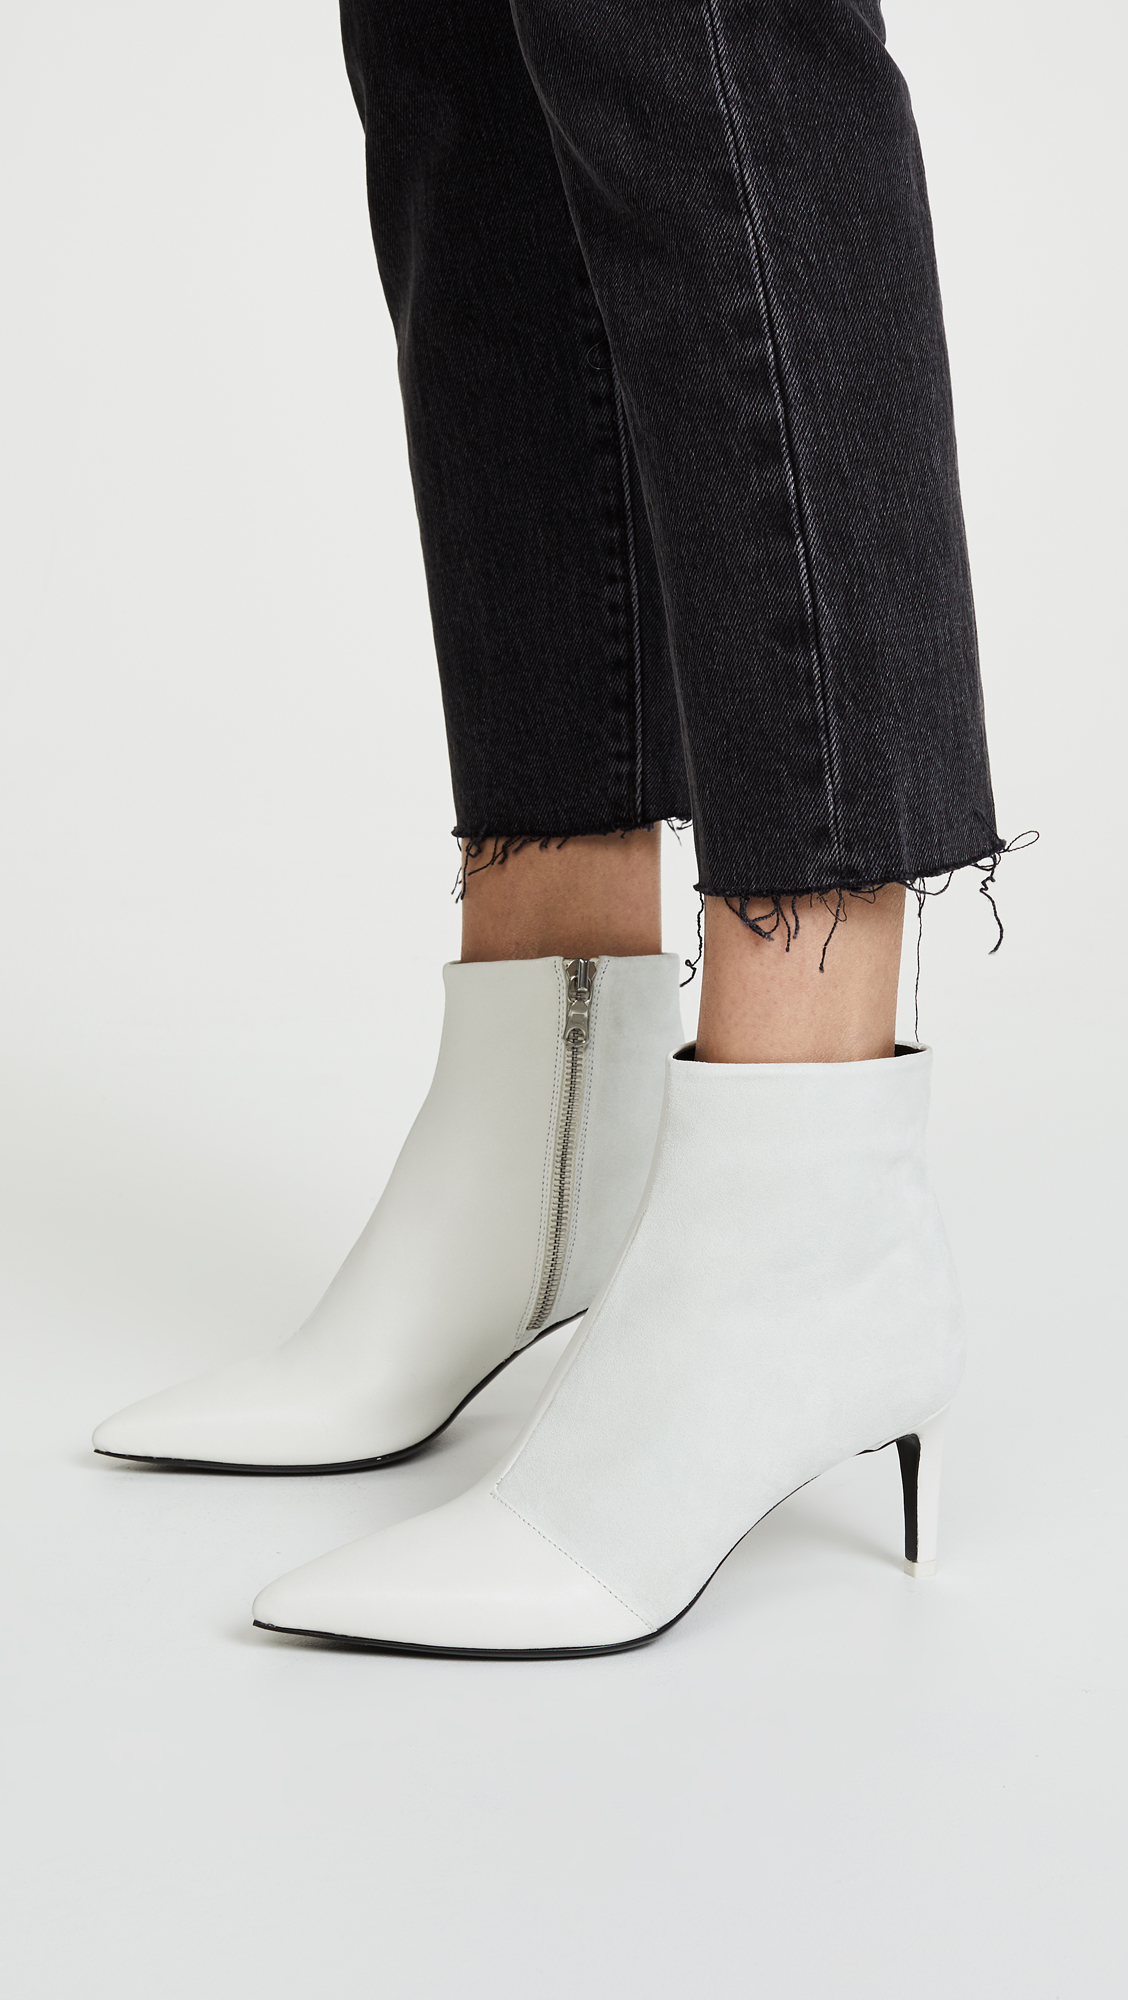 559a332b8d Rag & Bone Beha Booties | SHOPBOP